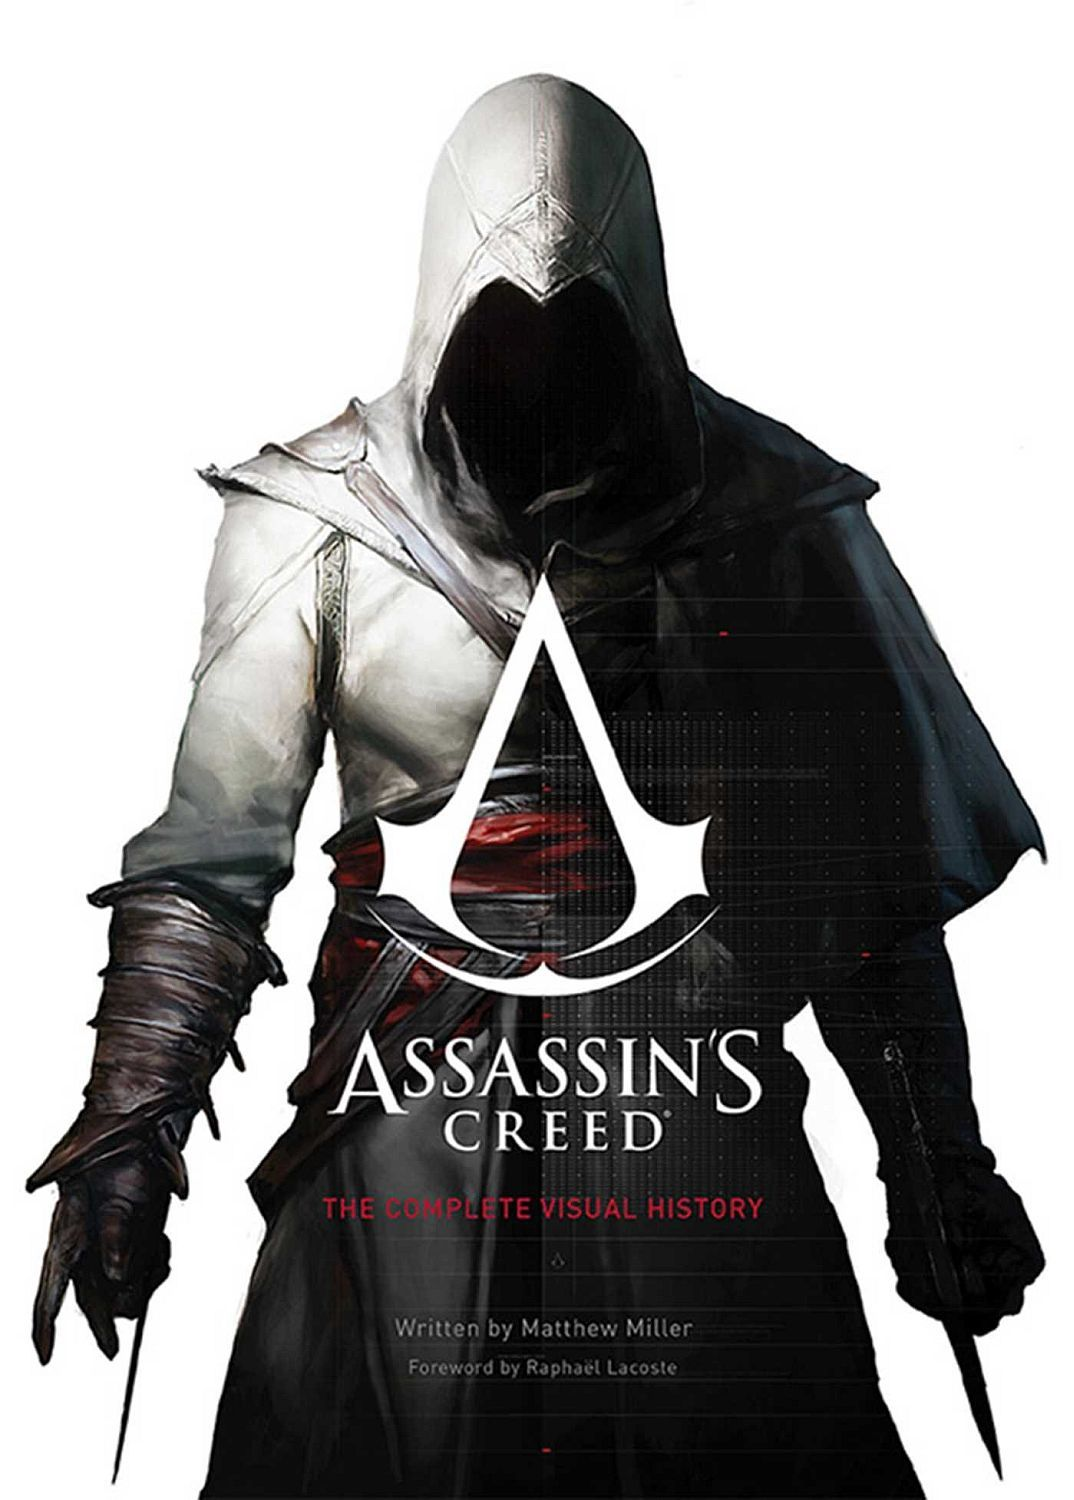 Assassin's Creed: The Complete Visual History (Hardcover) - 1